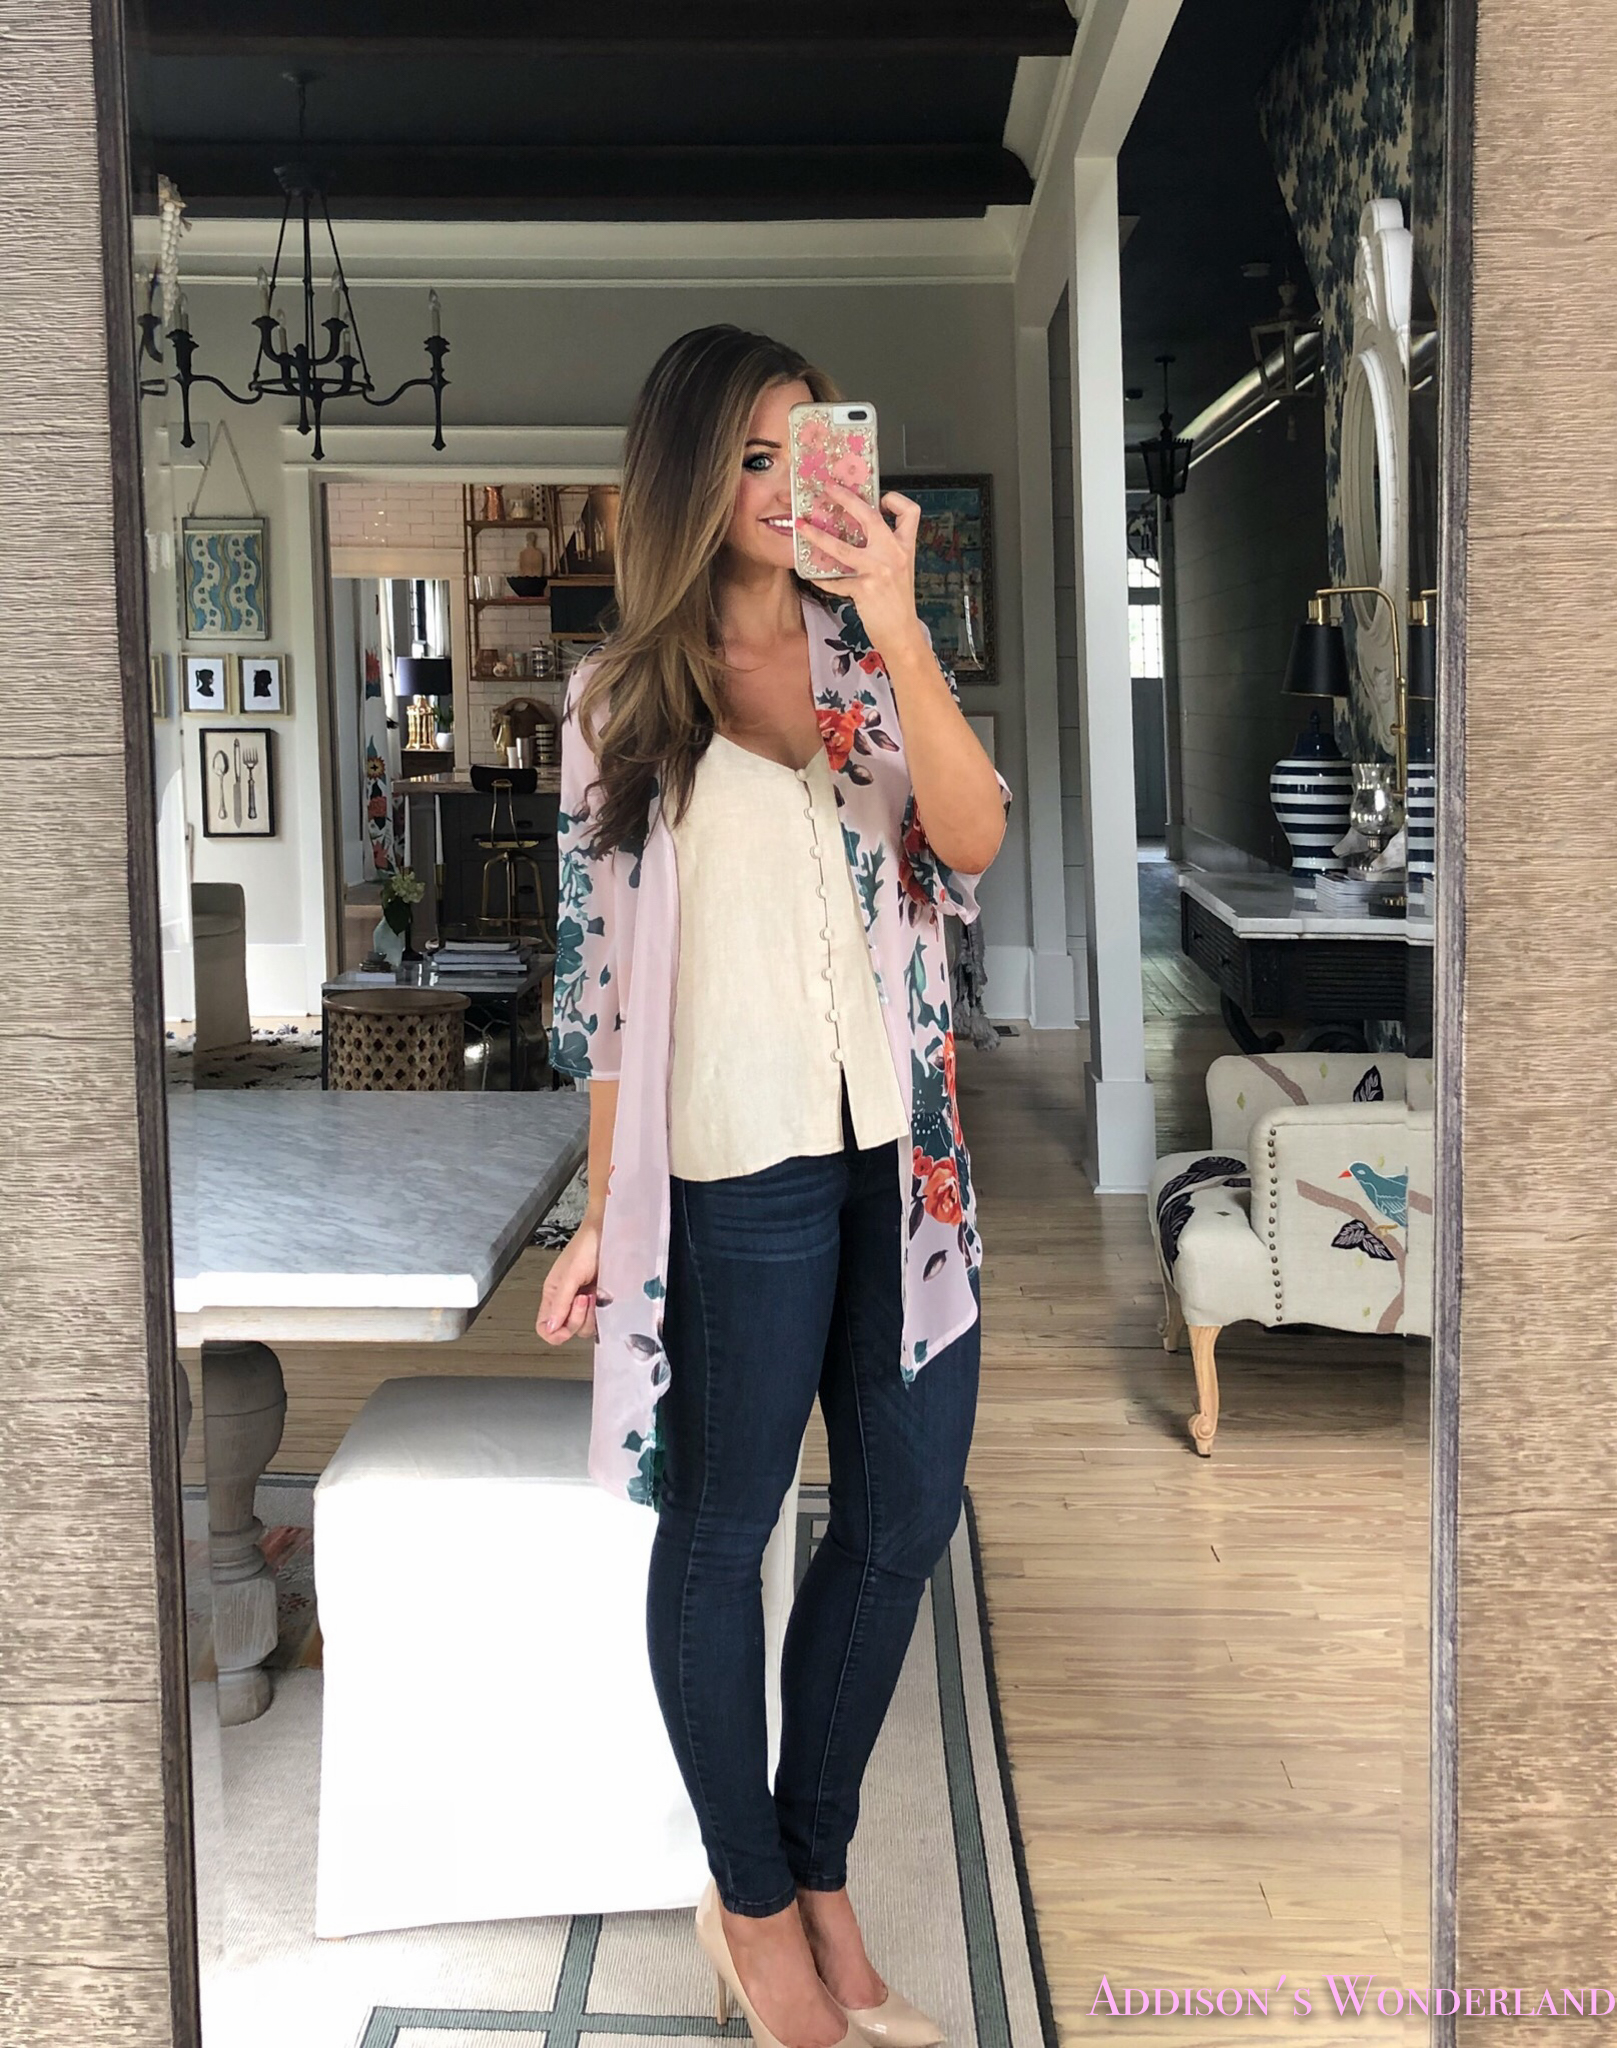 Amazon Women's Clothing Fashion Finds ALL UNDER $30!